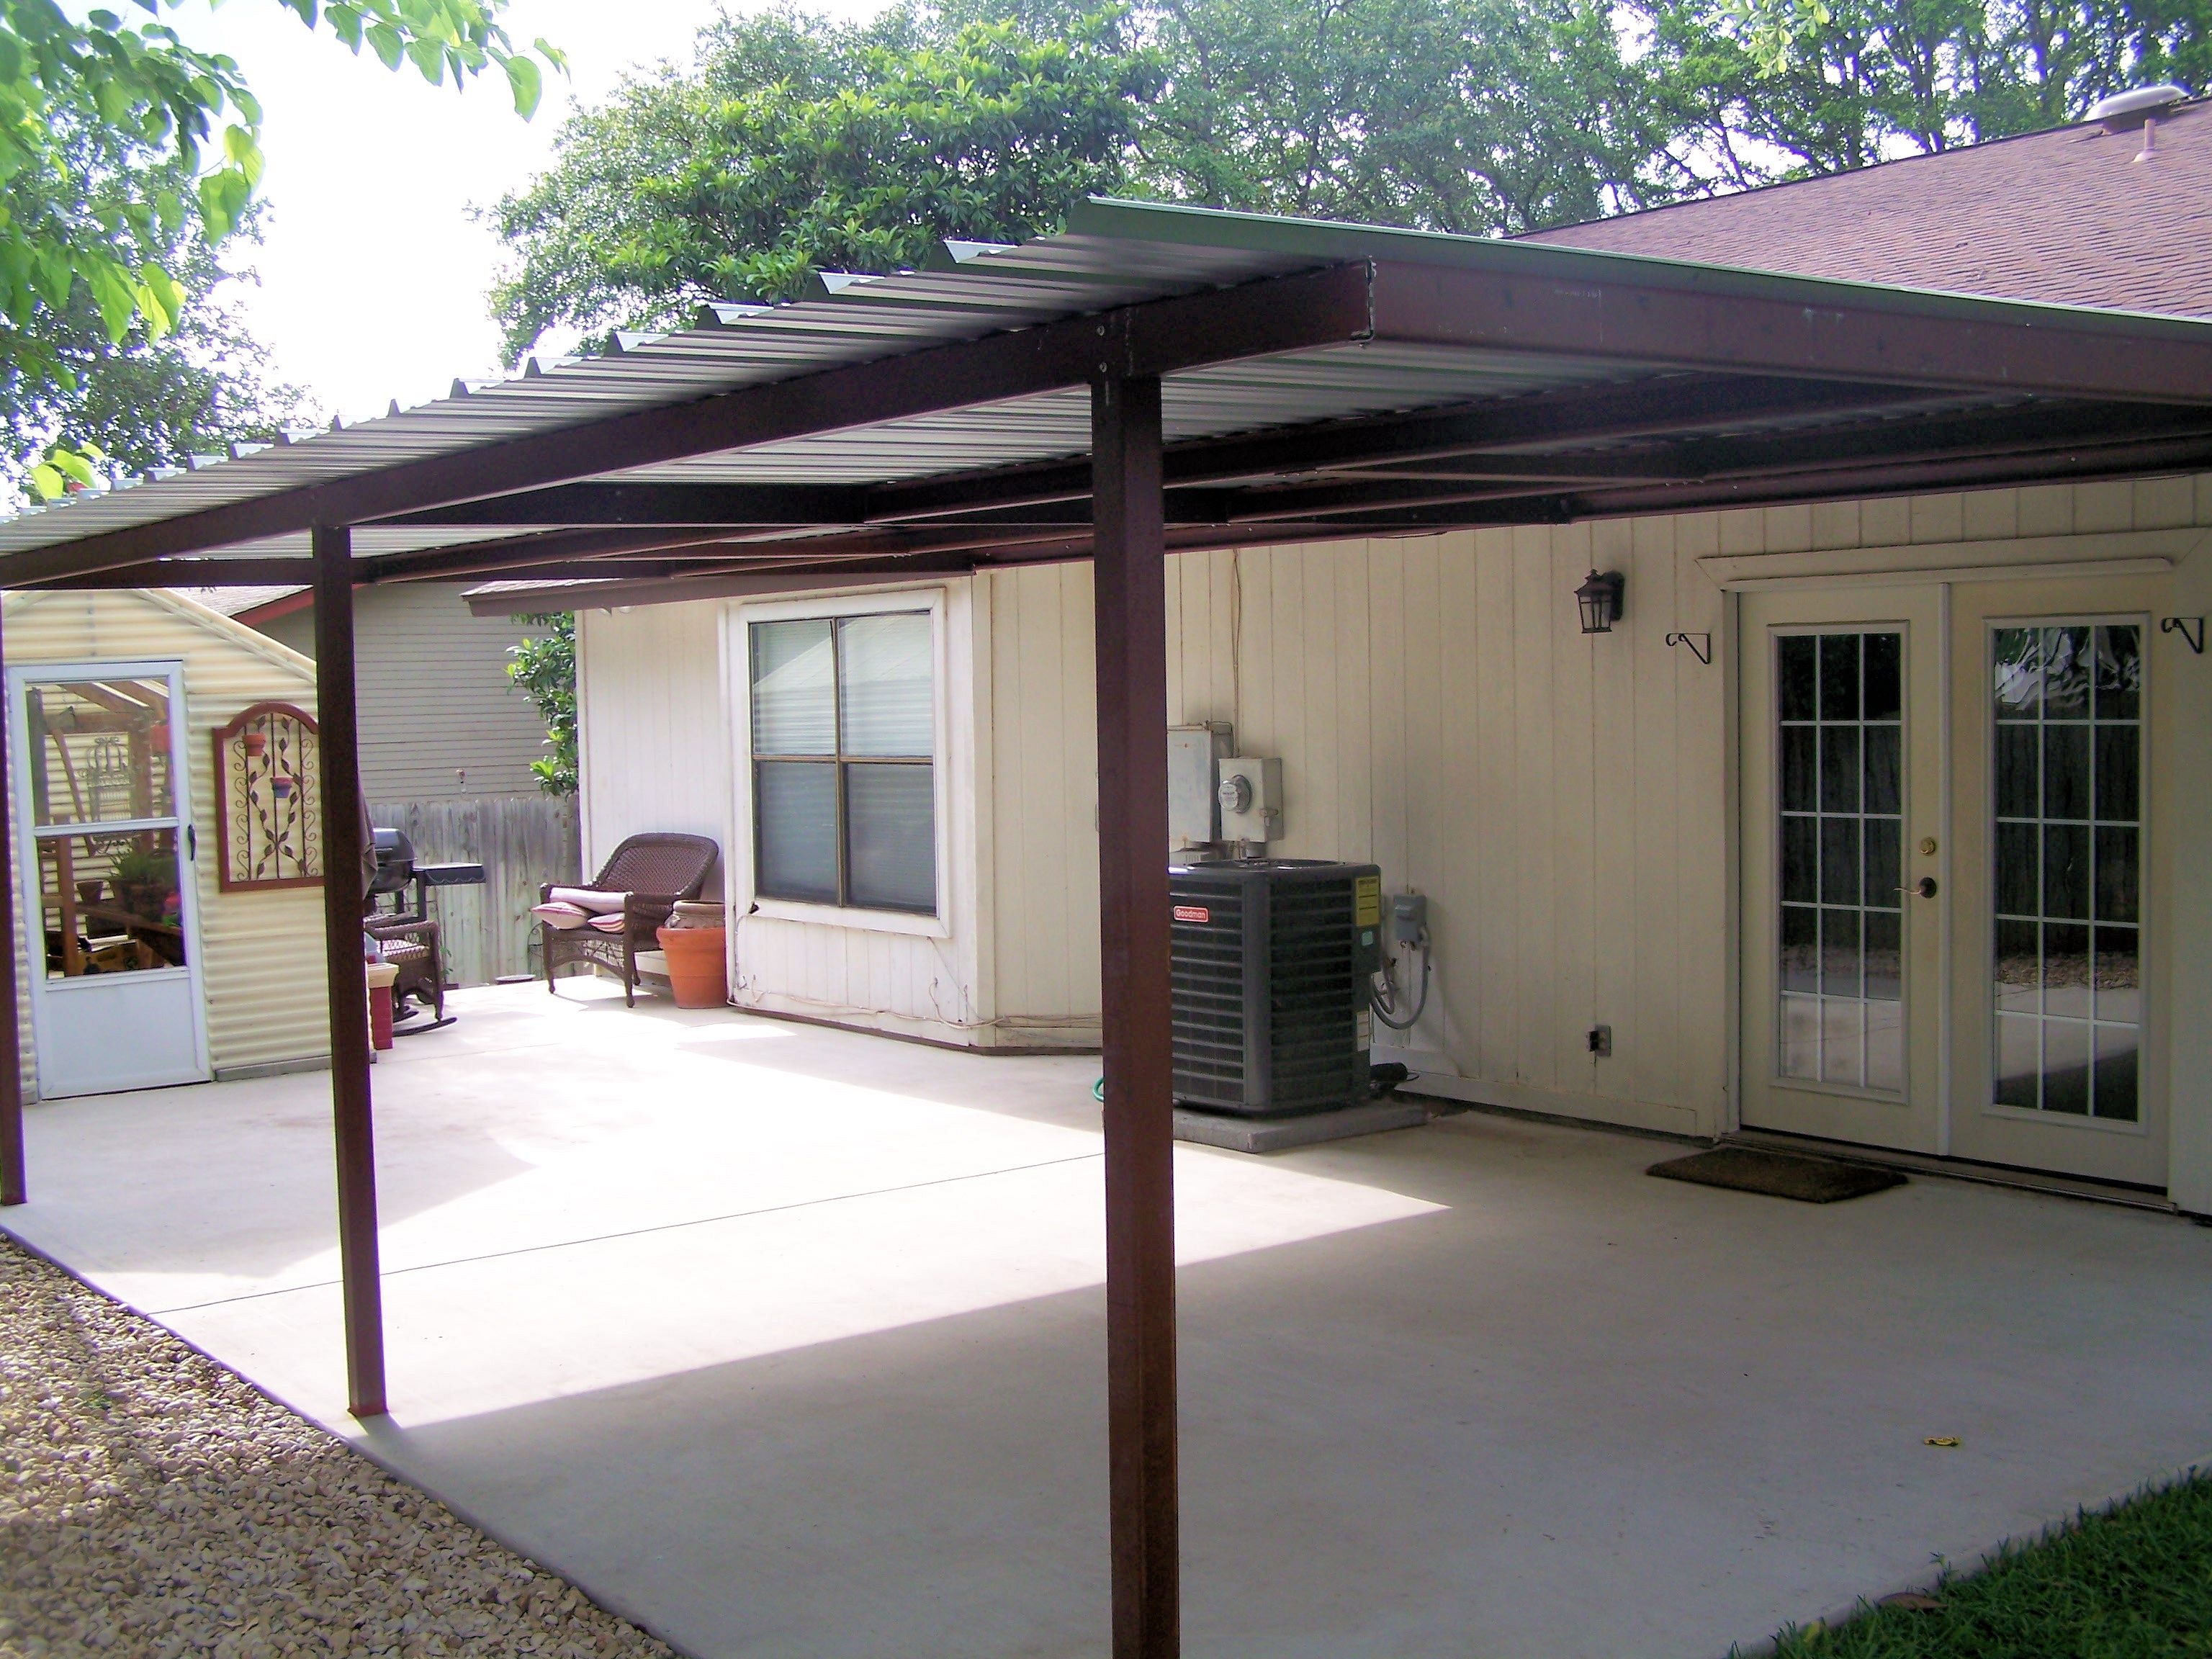 Tarp Lean To Off House Attached Lean To Patio Cover